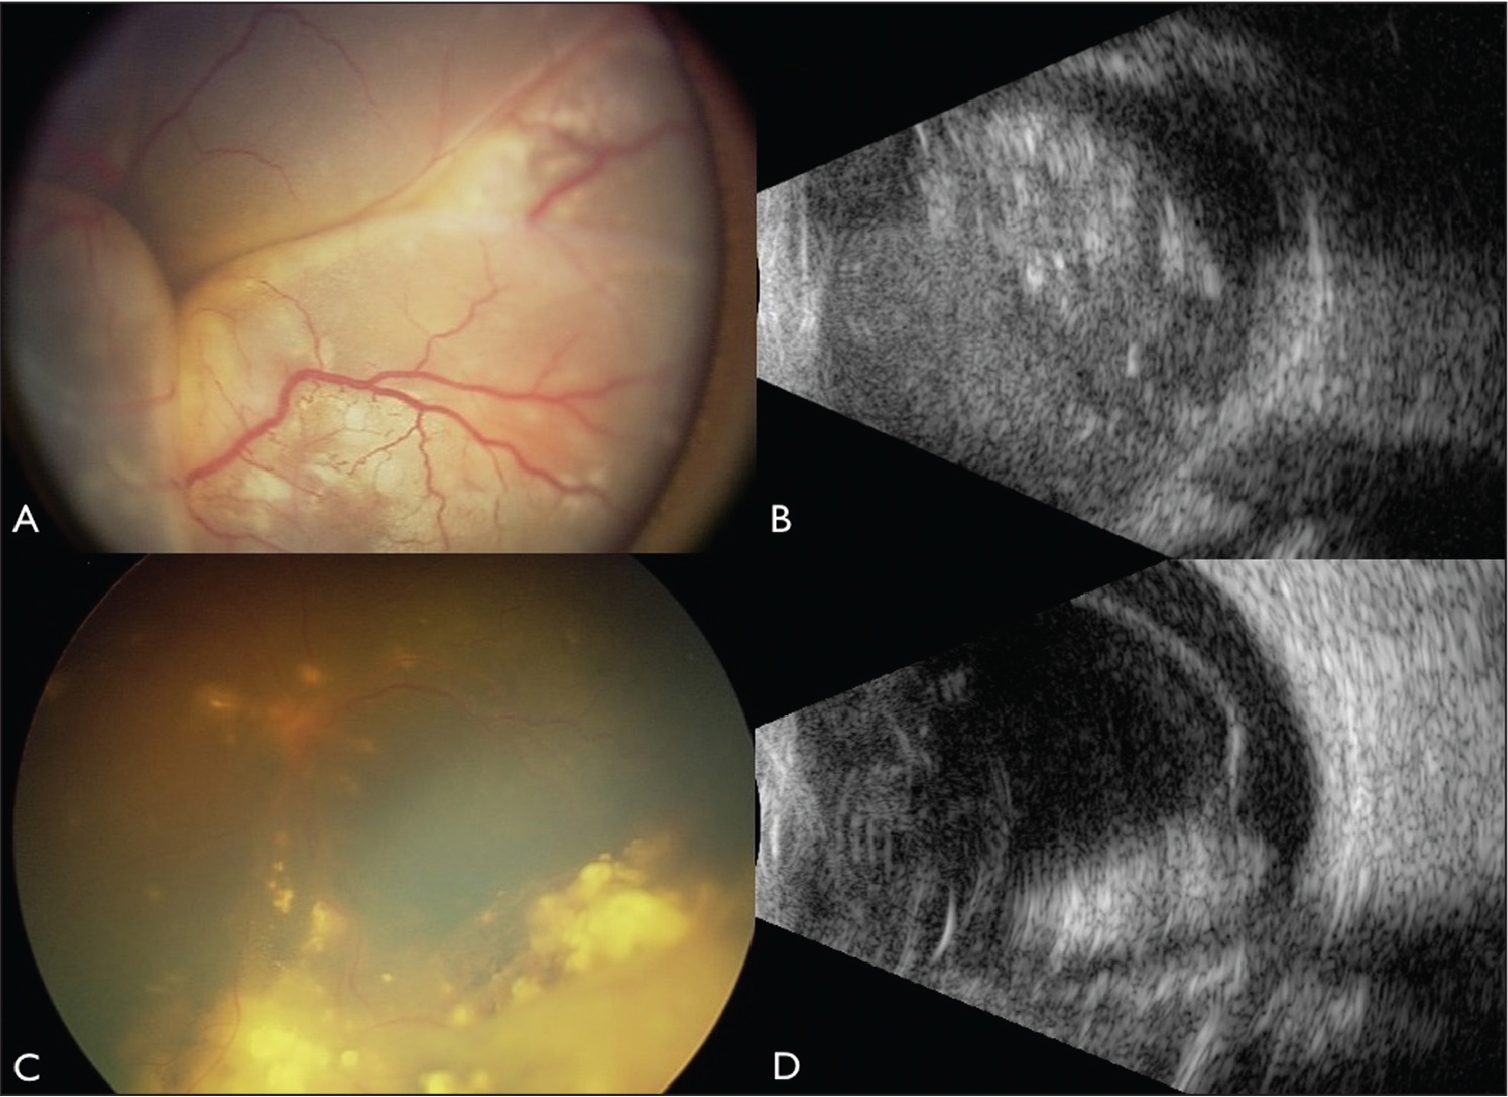 Group E unilateral retinoblastoma treated with intra-arterial chemotherapy (IAC). (A) A 19-month-old boy treated with IAC for group E retinoblastoma initially presented with total retinal detachment and retinal neovascularization. (B) Ultrasonography confirmed a tumor size of 20 mm in basal diameter and 16 mm in thickness with intralesional calcification. (C) Tumor regression occurred after one cycle of IAC, with (D) ultrasonography demonstrating decreased tumor thickness to 6 mm and improvement in subretinal fluid.